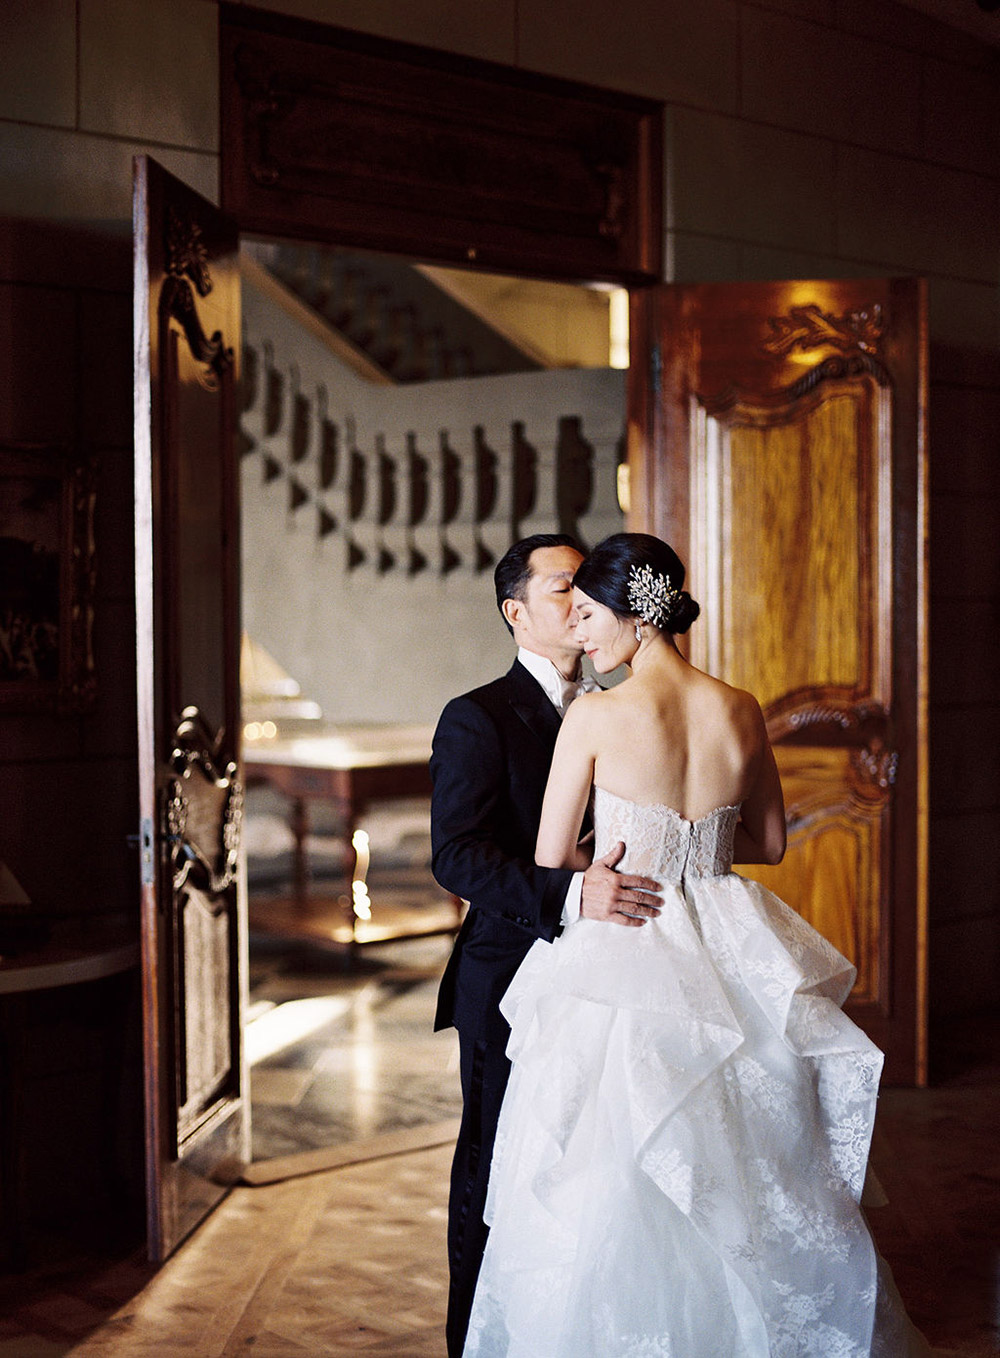 Photo by Lilikad Photography. www.theweddingnotebook.com